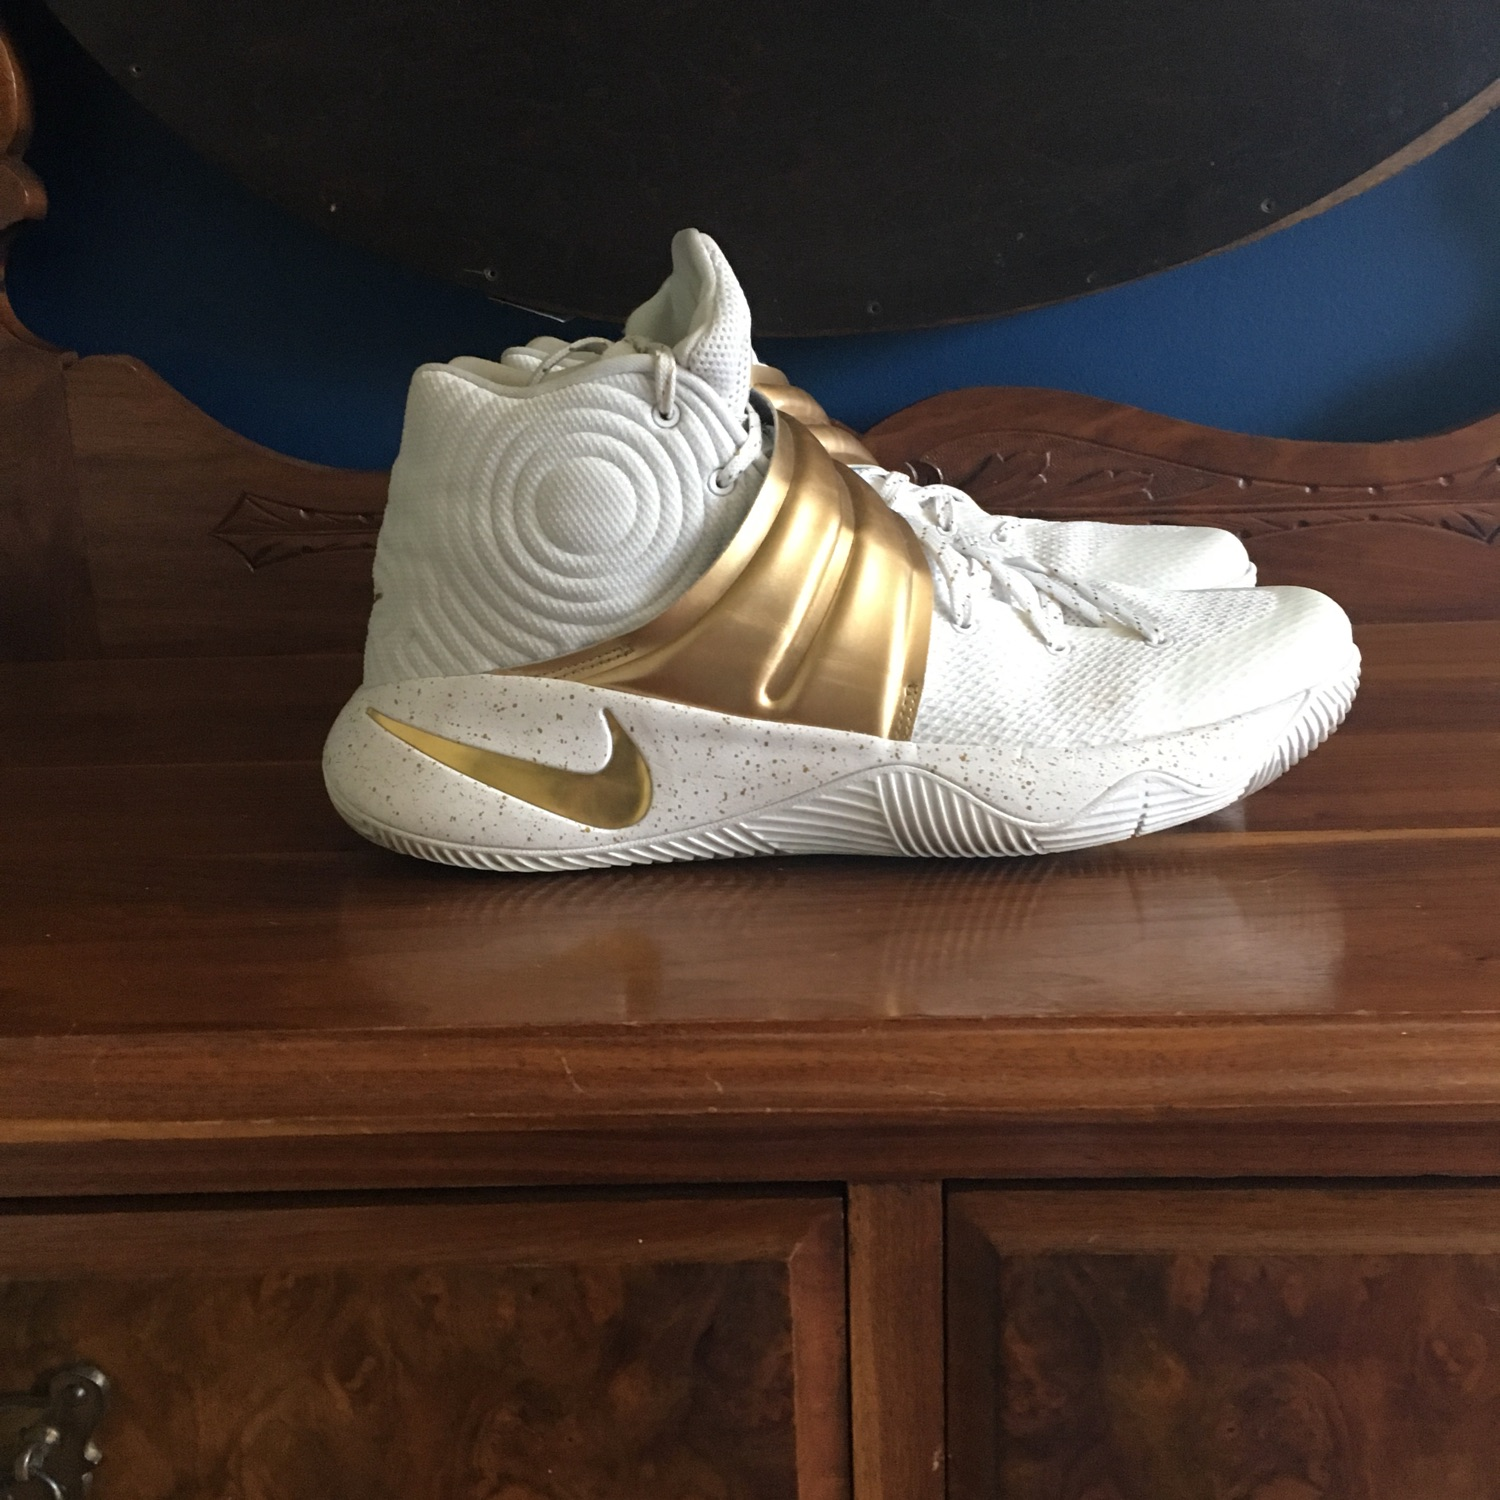 premium selection a61b4 f474a Nike Id Kyrie 2 White / Gold Size 11.5